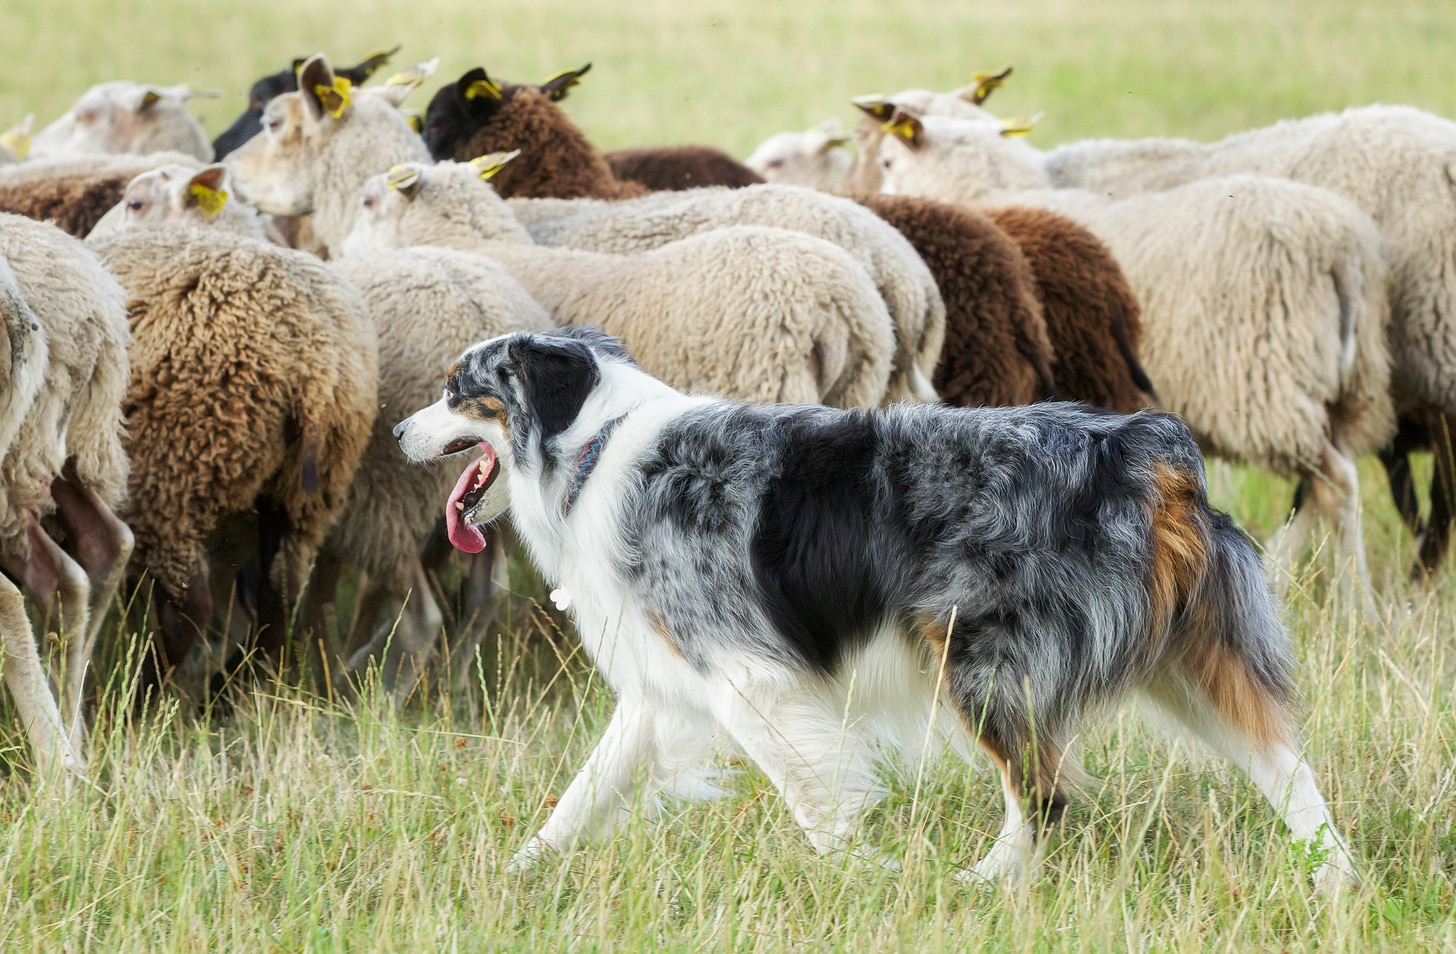 Purebred border collie panting while herding a flock of sheep on a summer day.